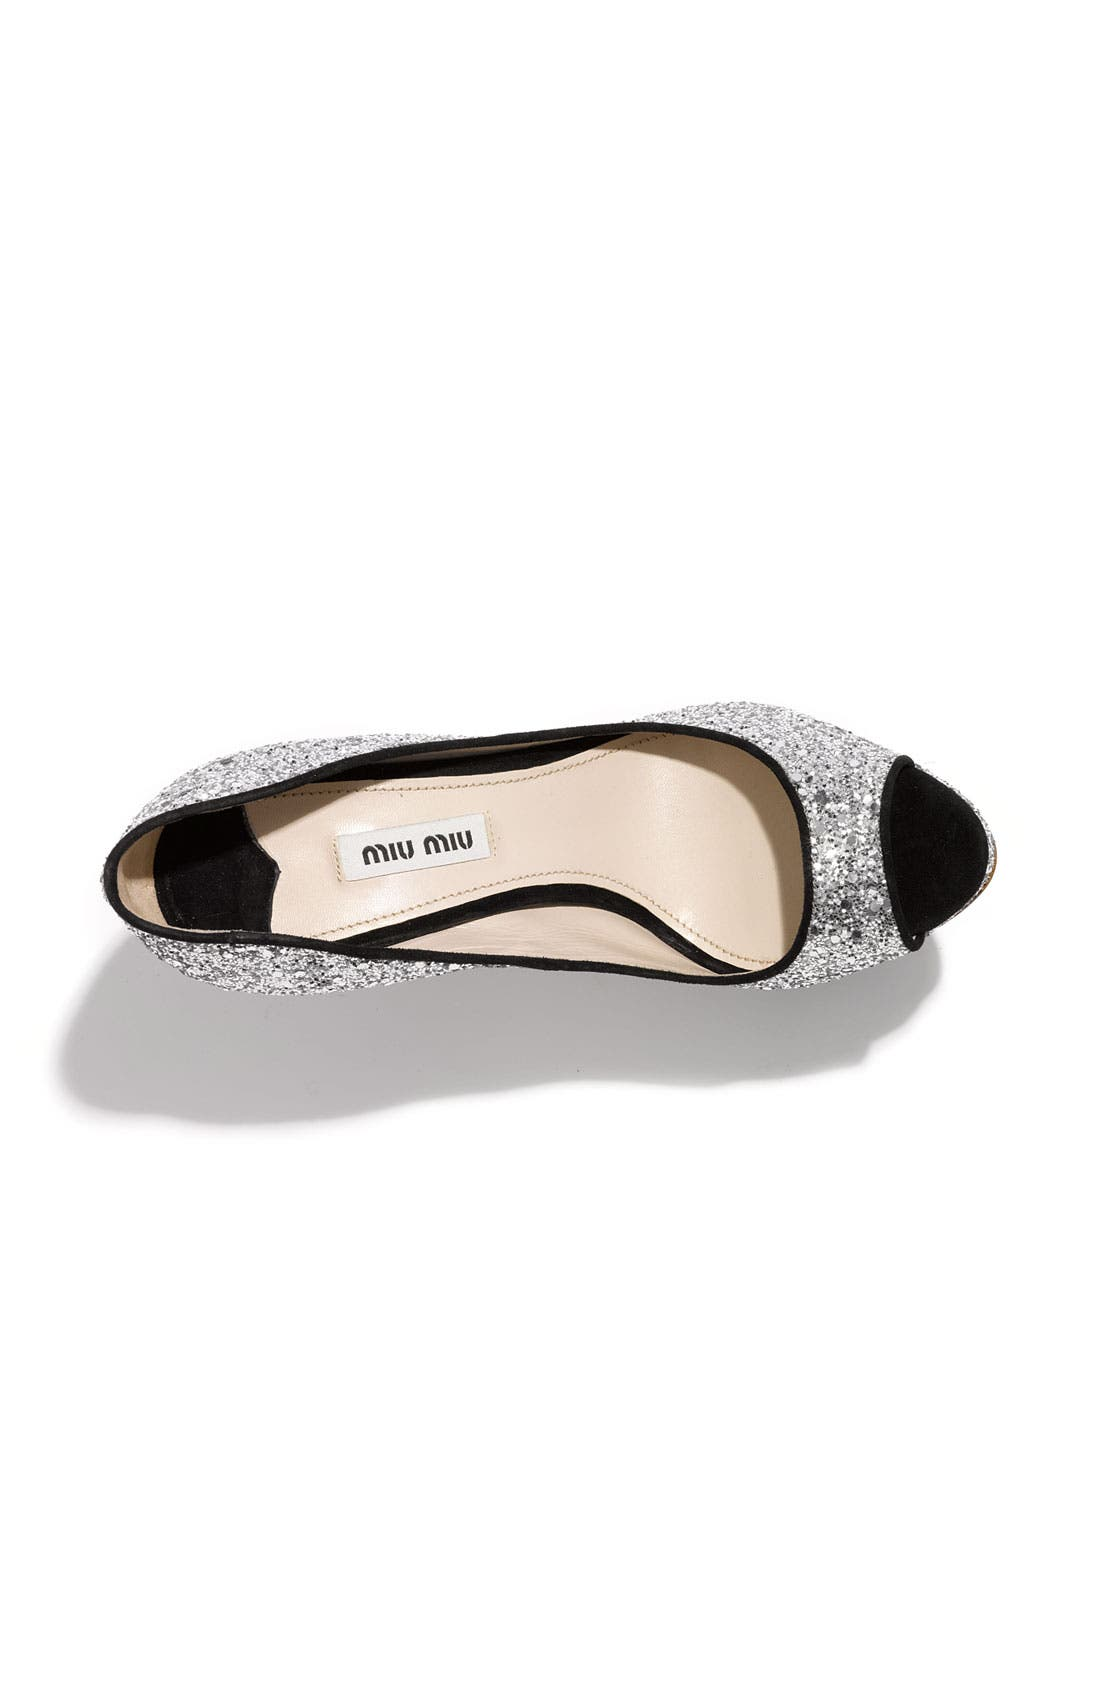 Alternate Image 3  - Miu Miu Glitter Open Toe Platform Pump